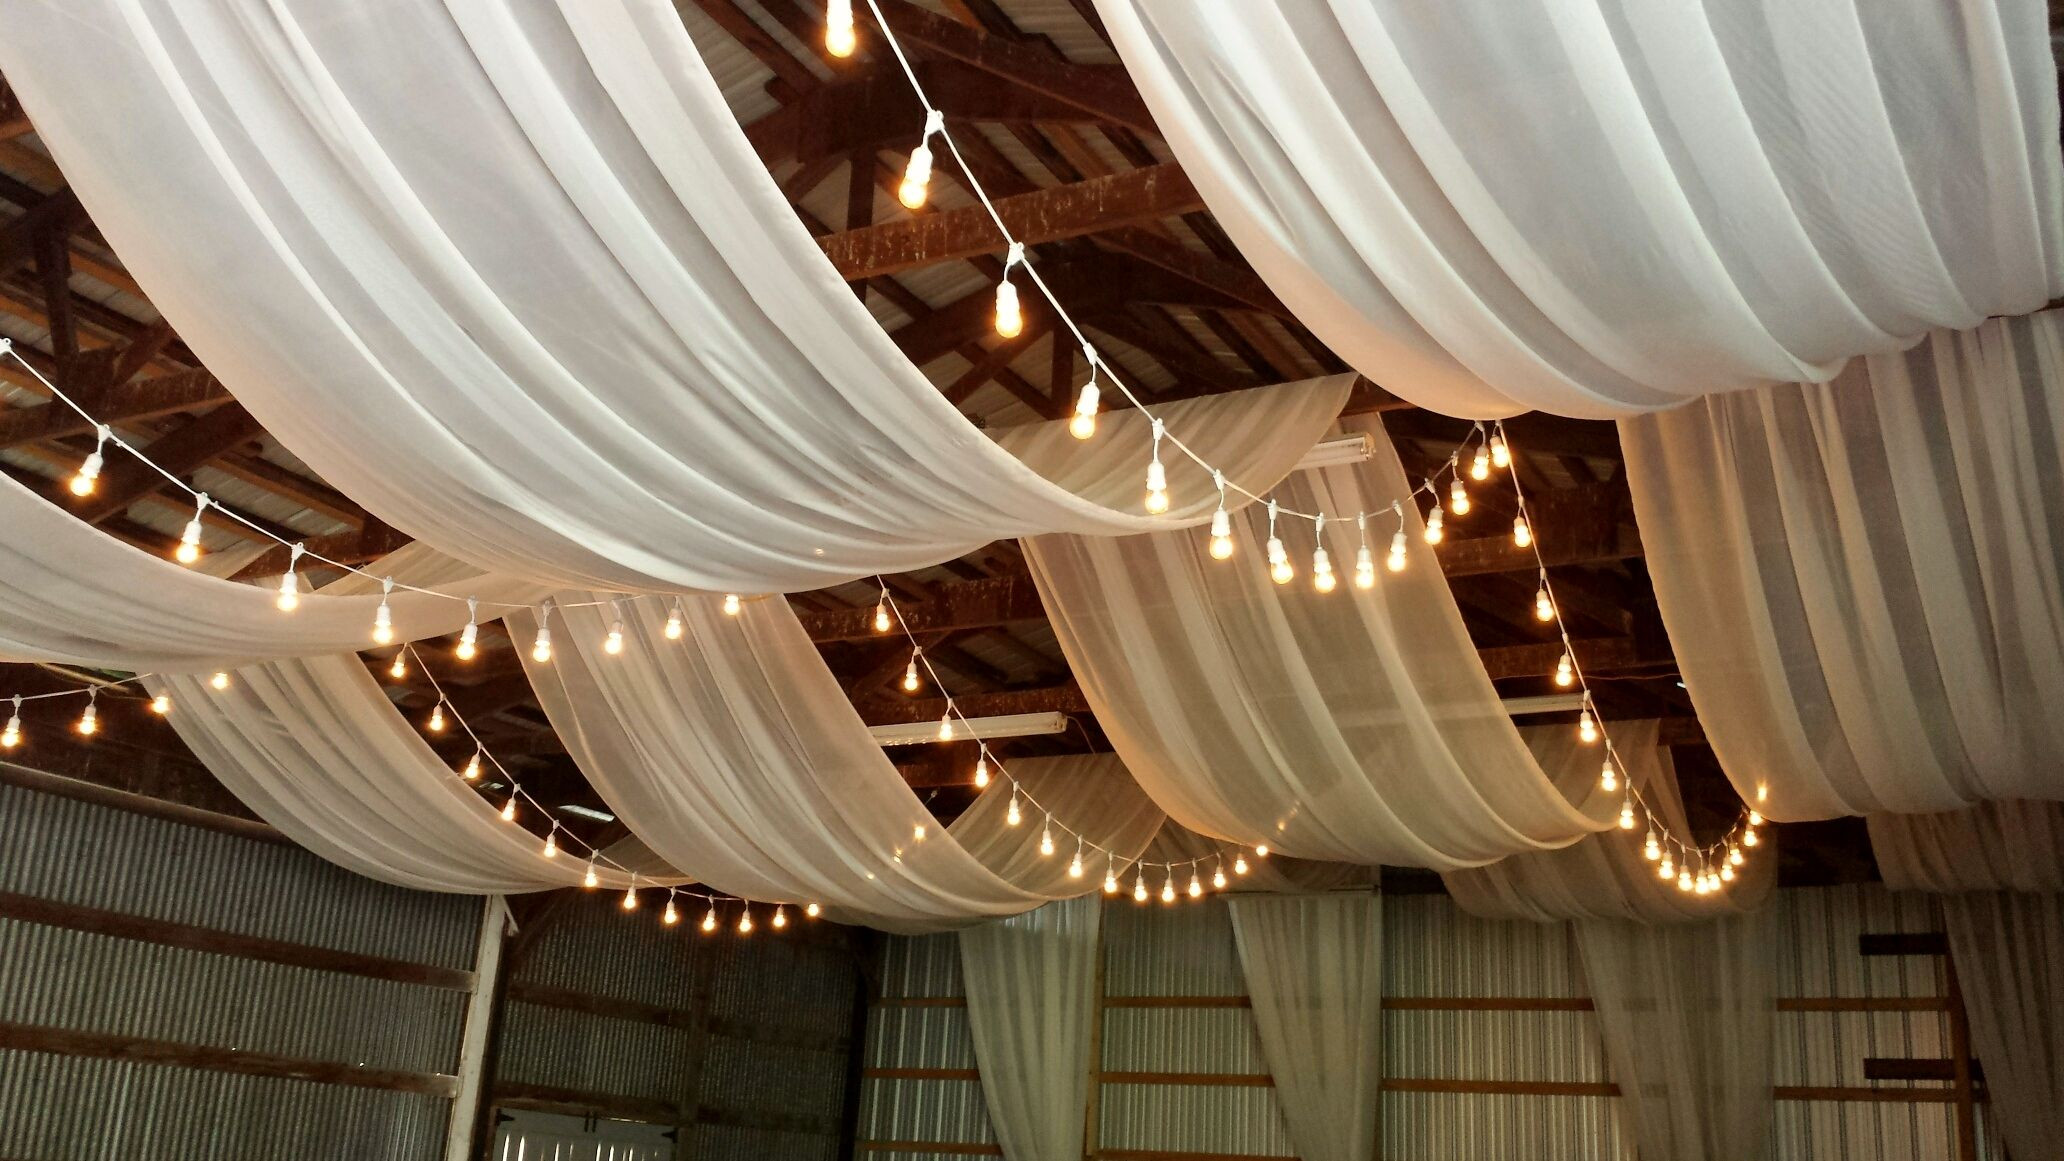 DIY Draping For Wedding  Ceiling draping in a barn This makes a rustic wedding